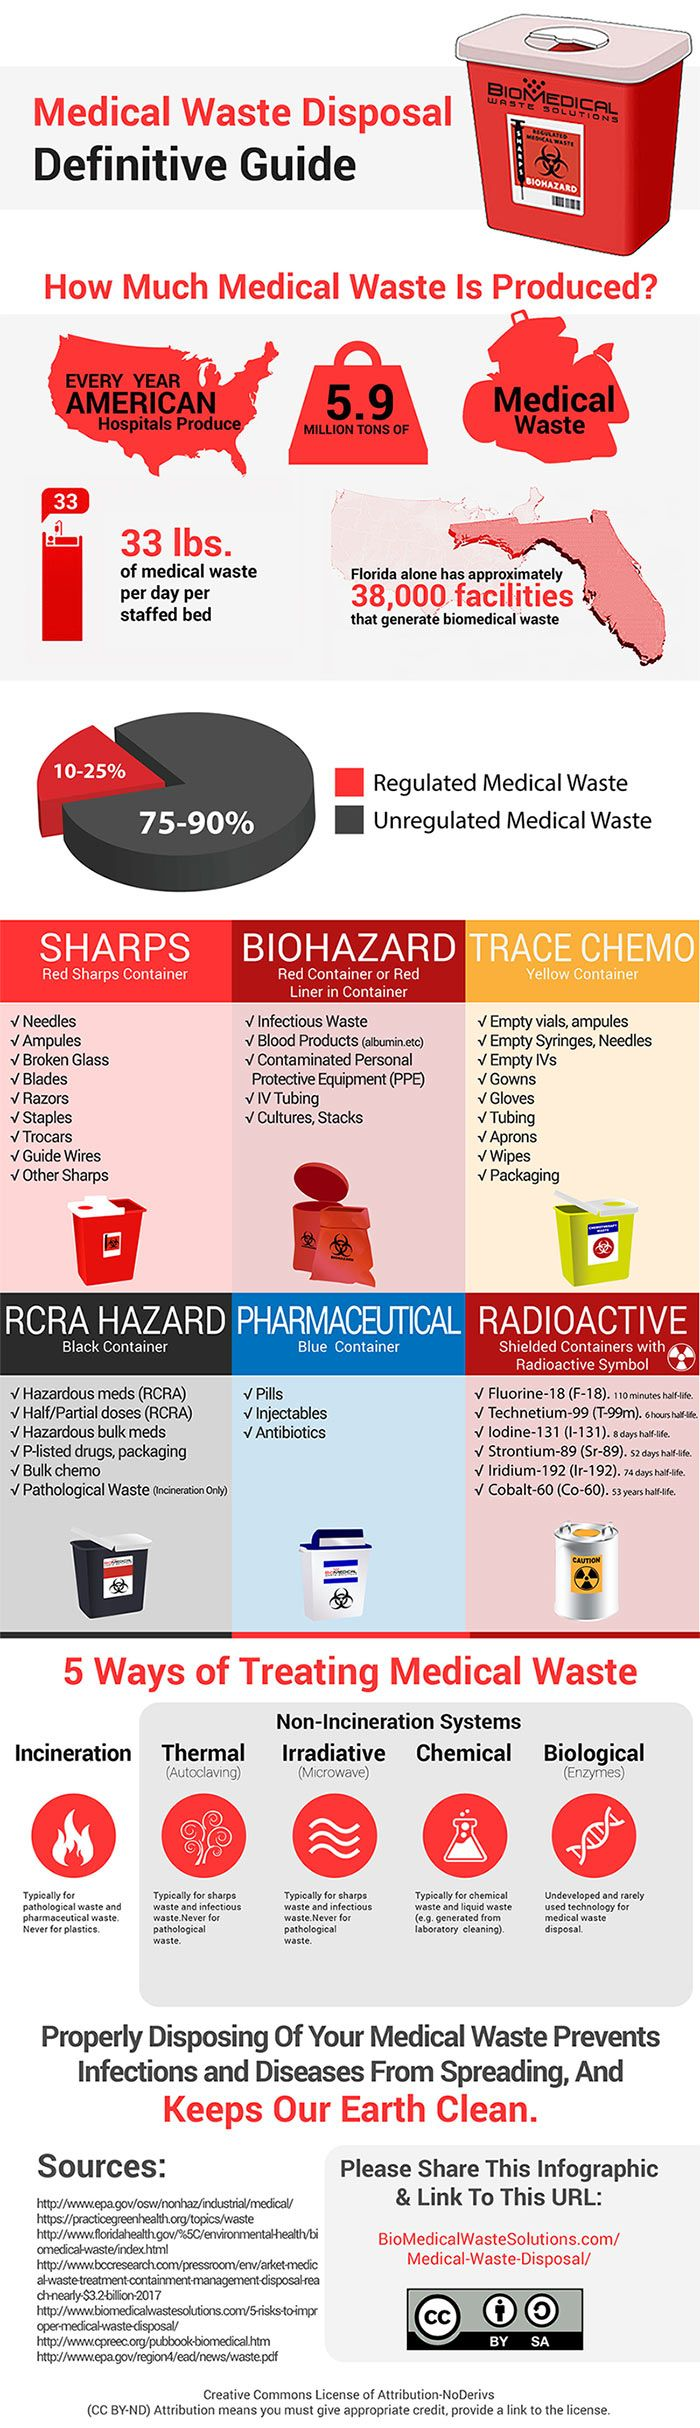 Medical-Waste-Disposal-Definitive-Guide-Infographic